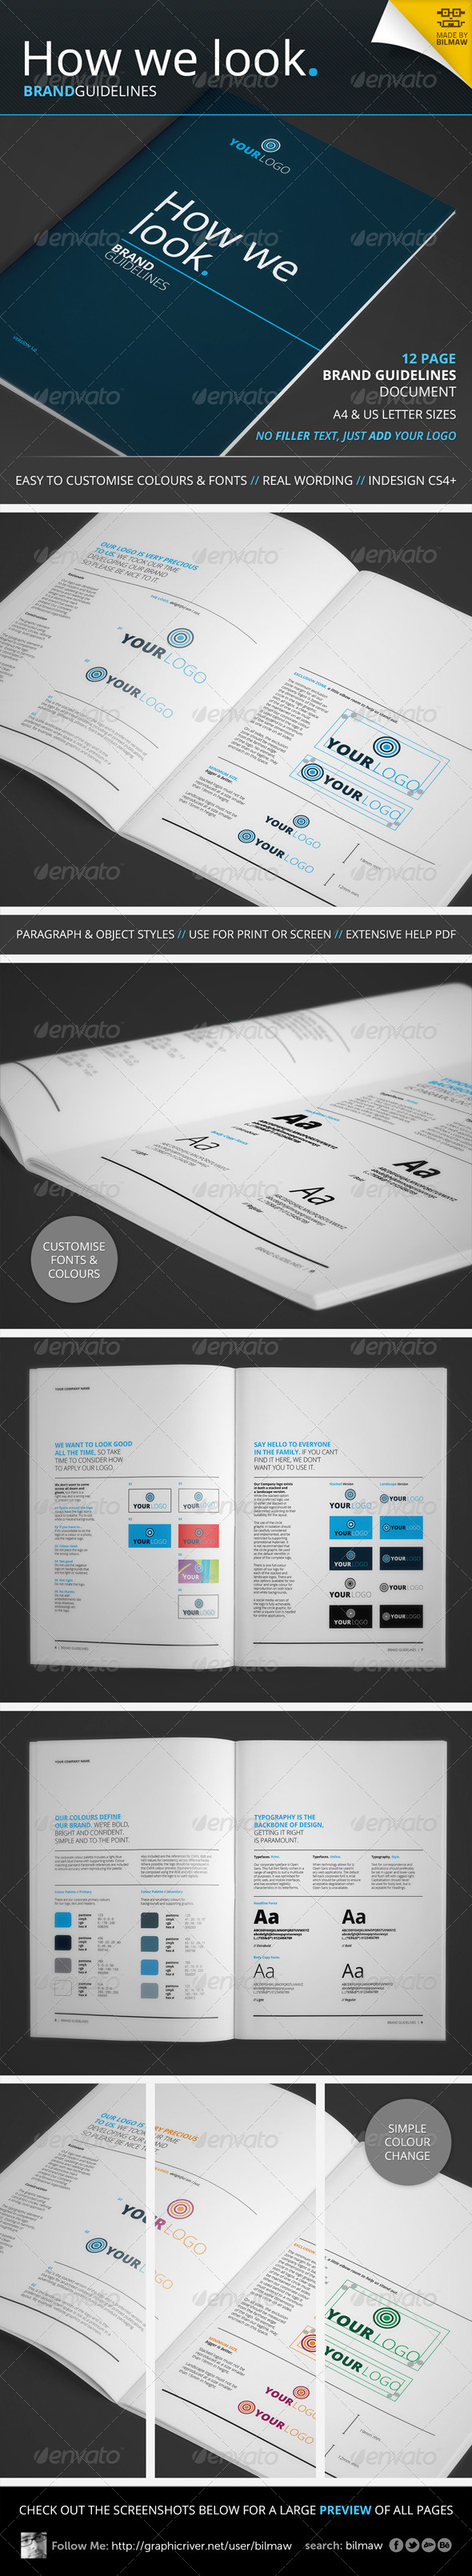 GraphicRiver How We Look Brand Guidelines 4355542